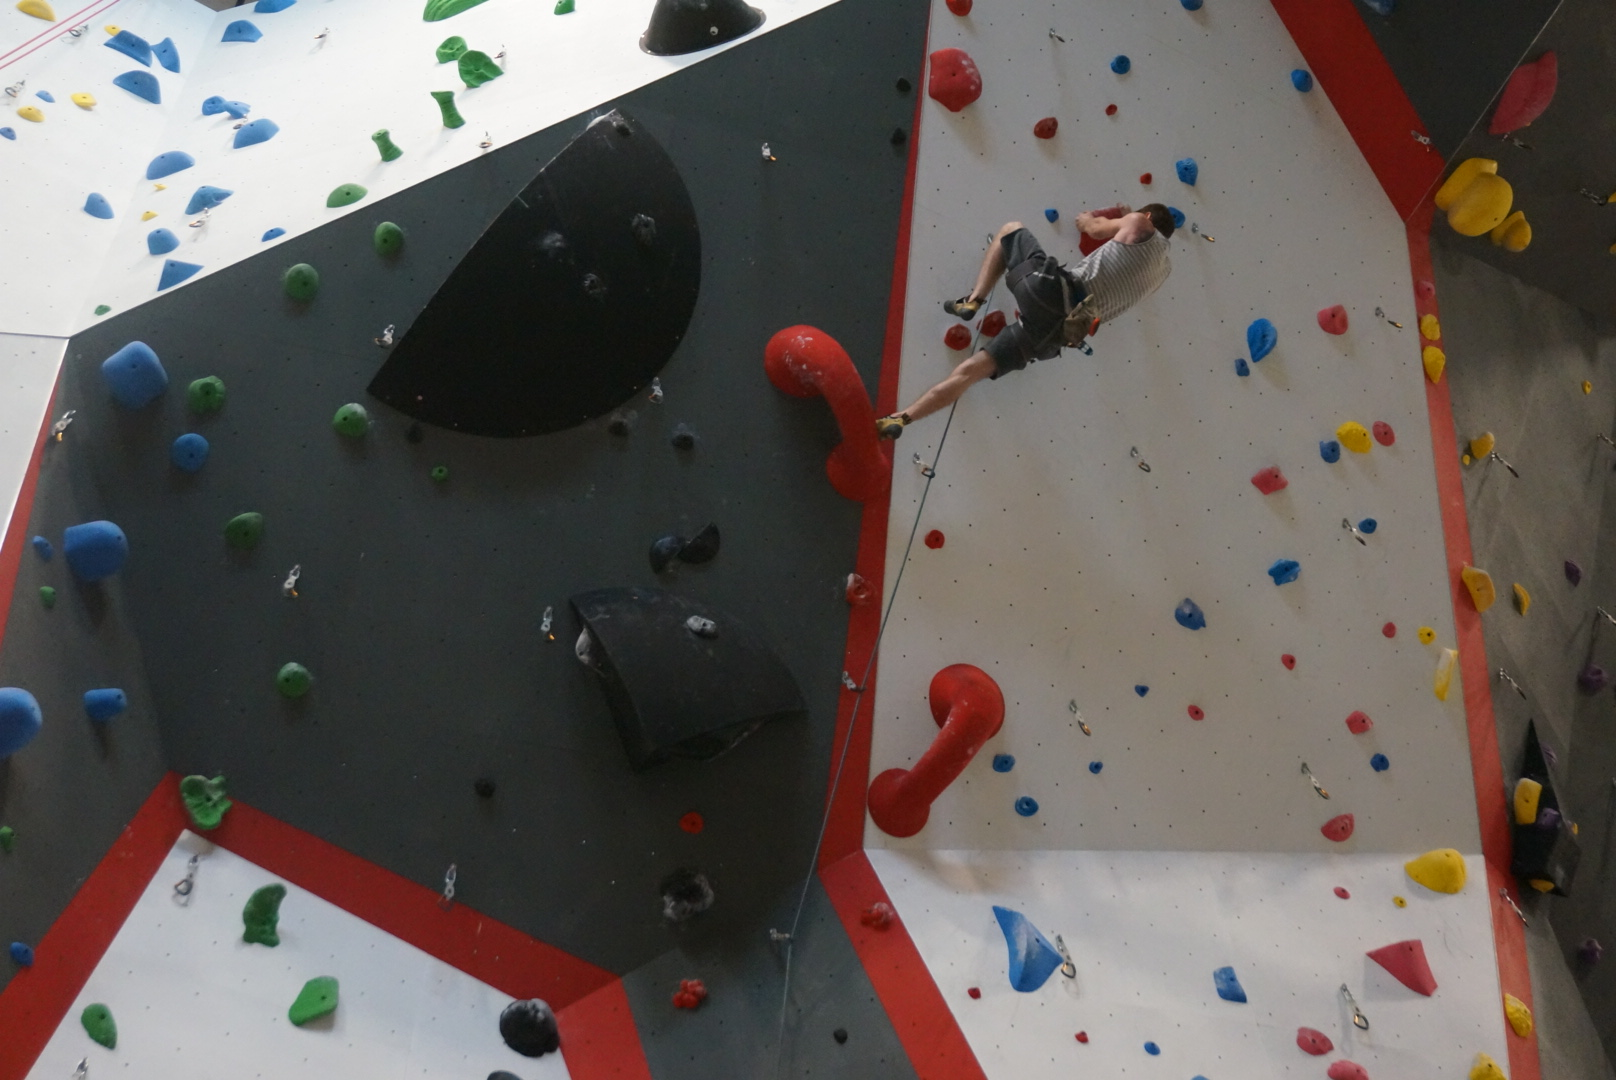 Climbing: A Physical and Mental Workout